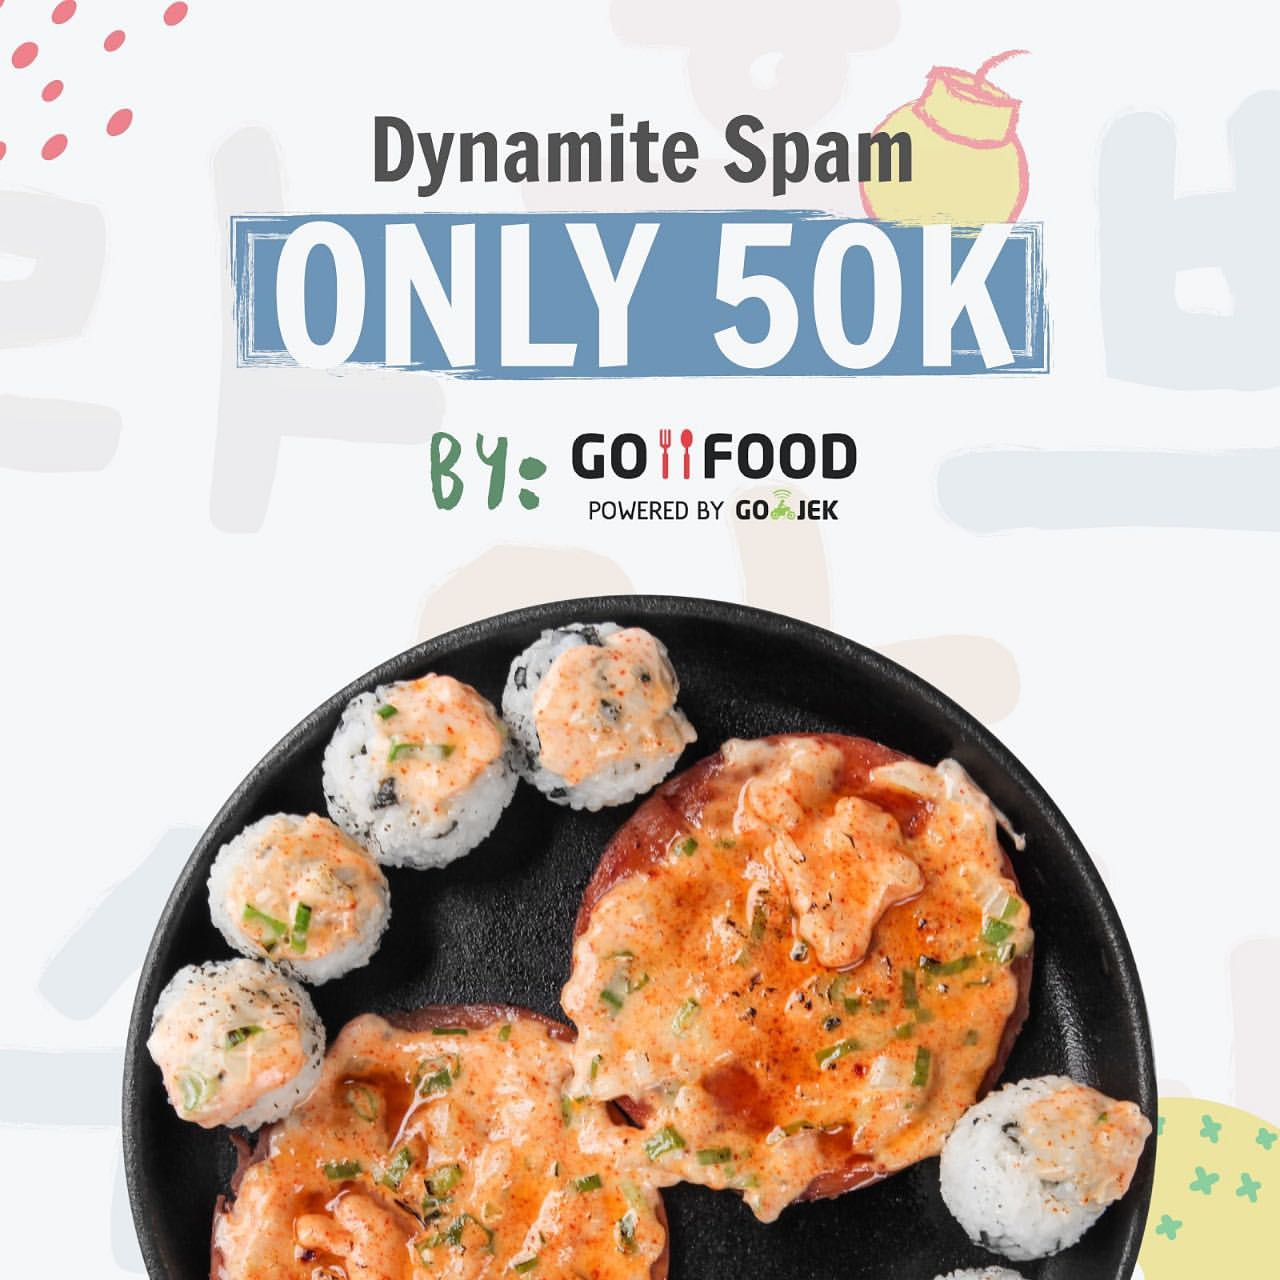 Patbingsoo Special Price Dynamite Spam Only 50K Only By Go-Food